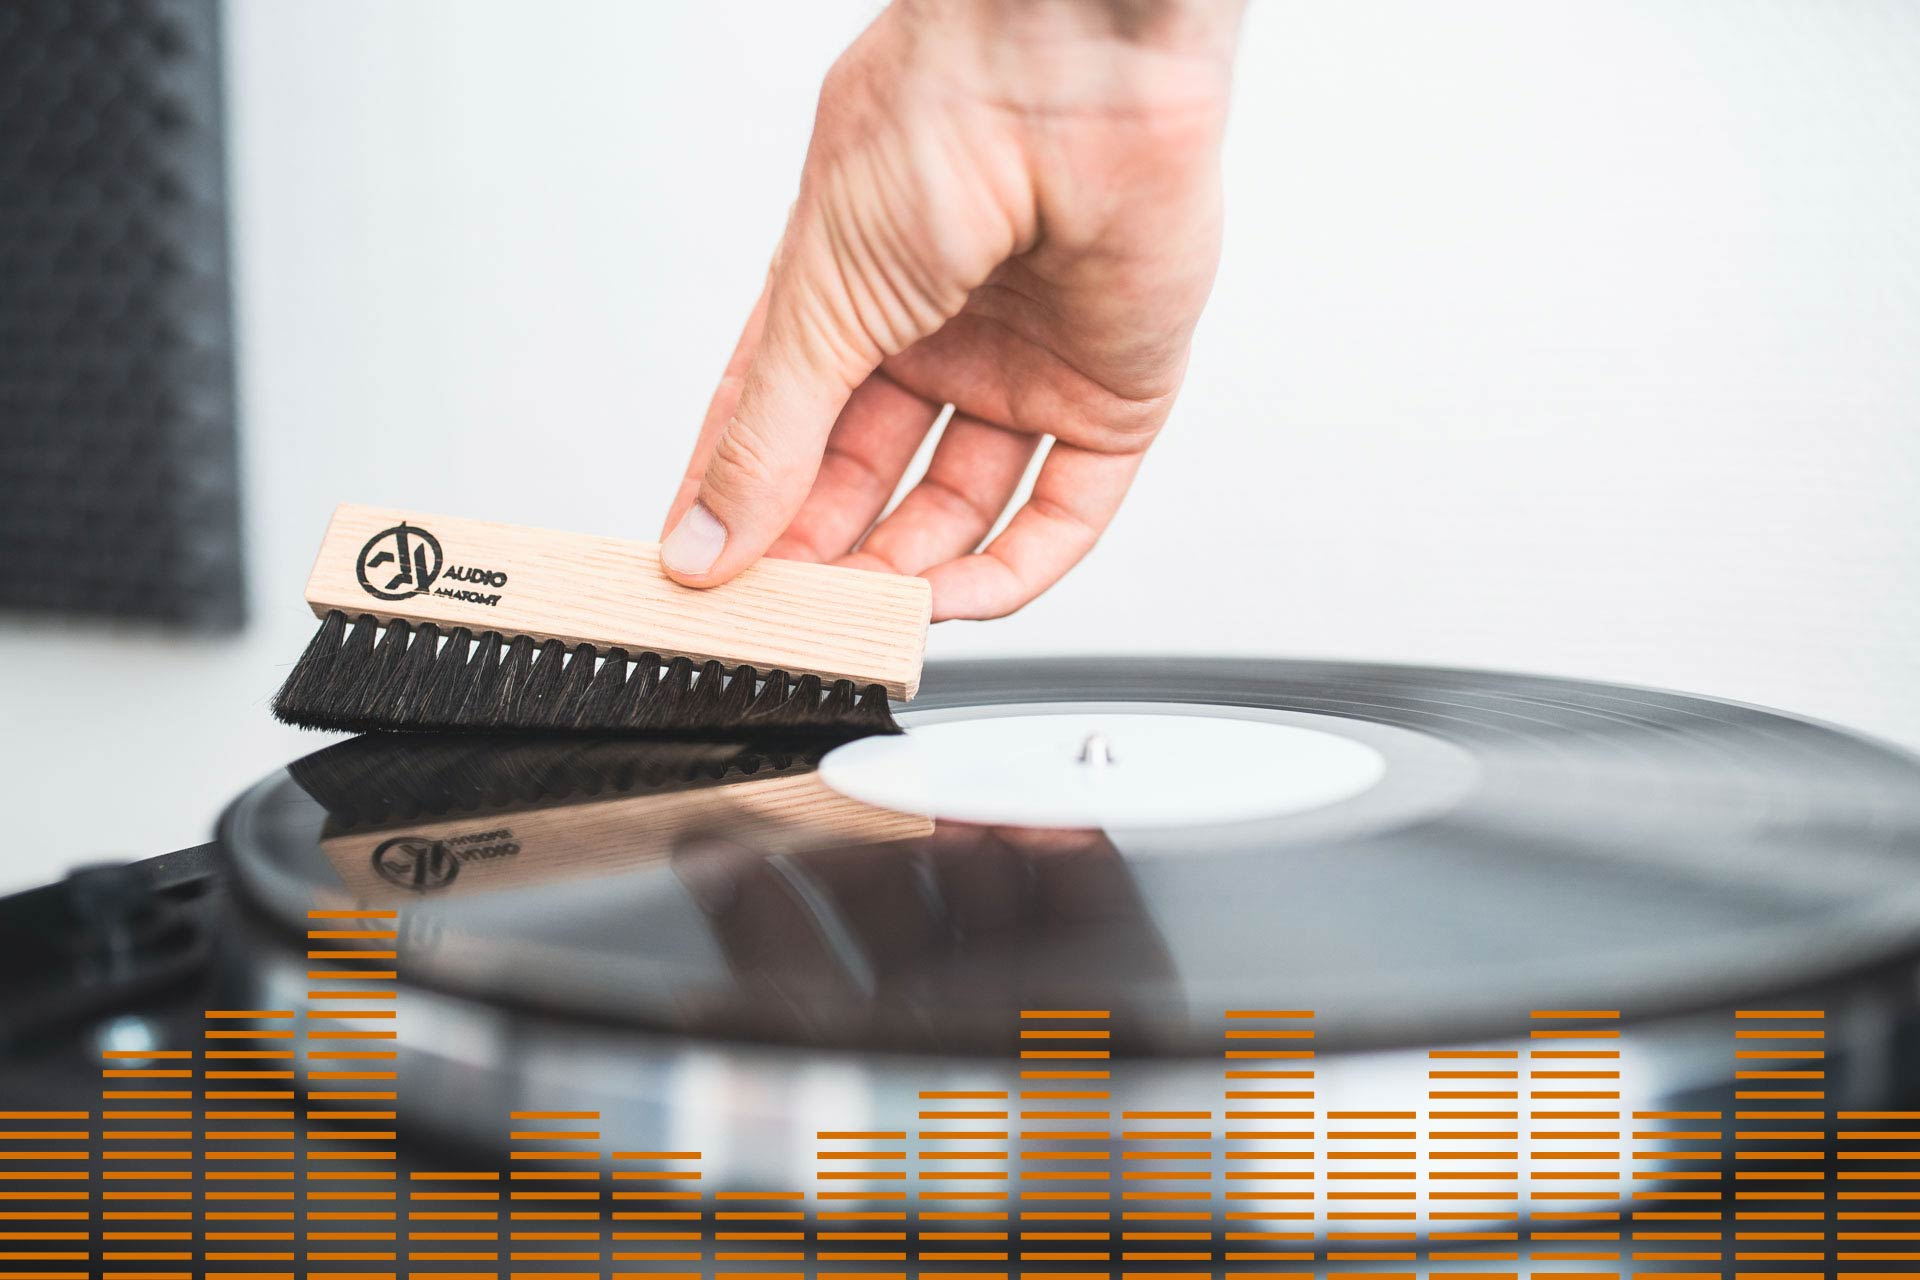 A person cleans a LP with a brush